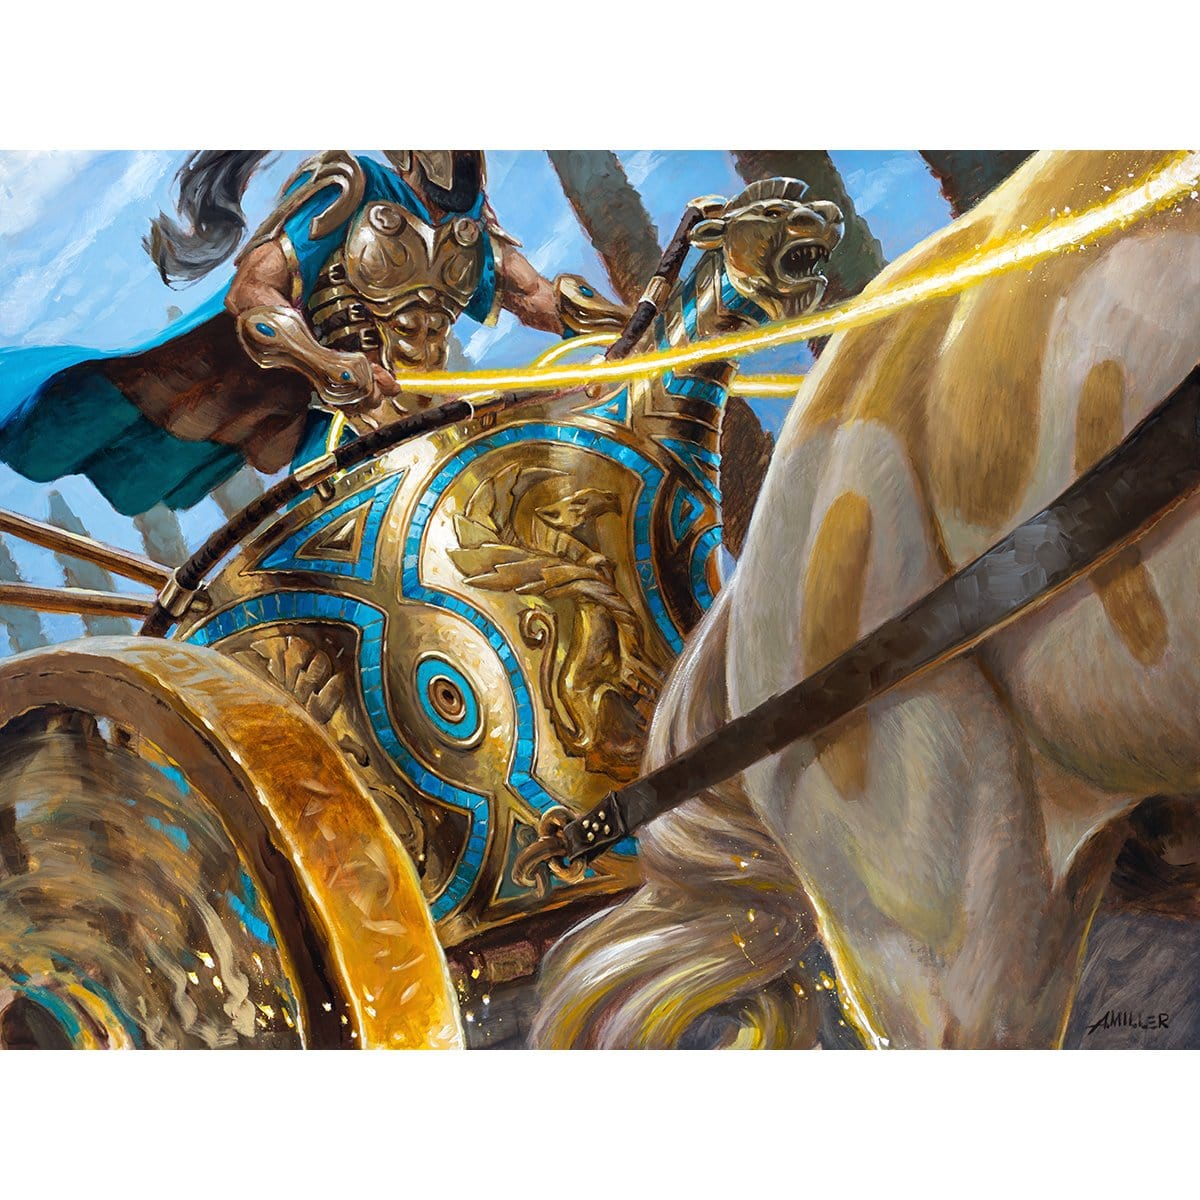 Thundering Chariot Print - Print - Original Magic Art - Accessories for Magic the Gathering and other card games